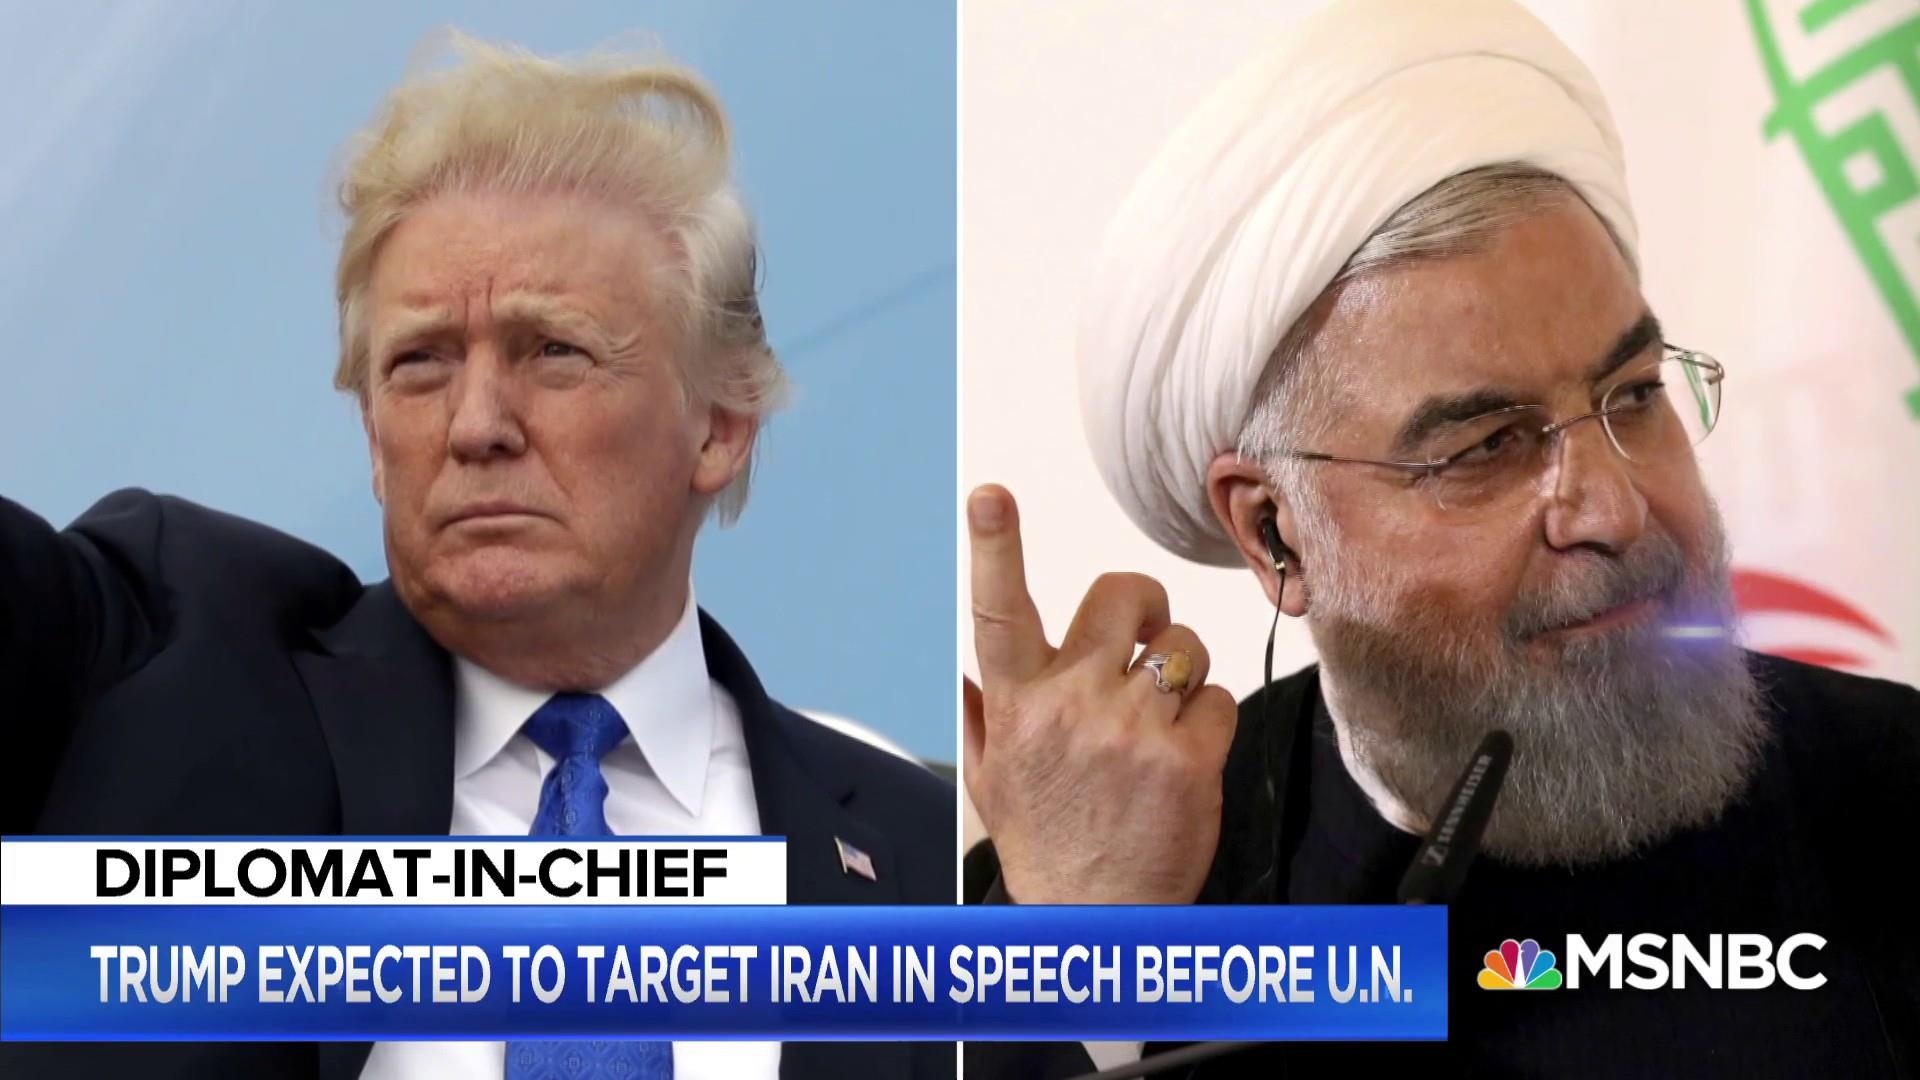 Trump: No plans to meet Rouhani, sure he is a 'lovely man'